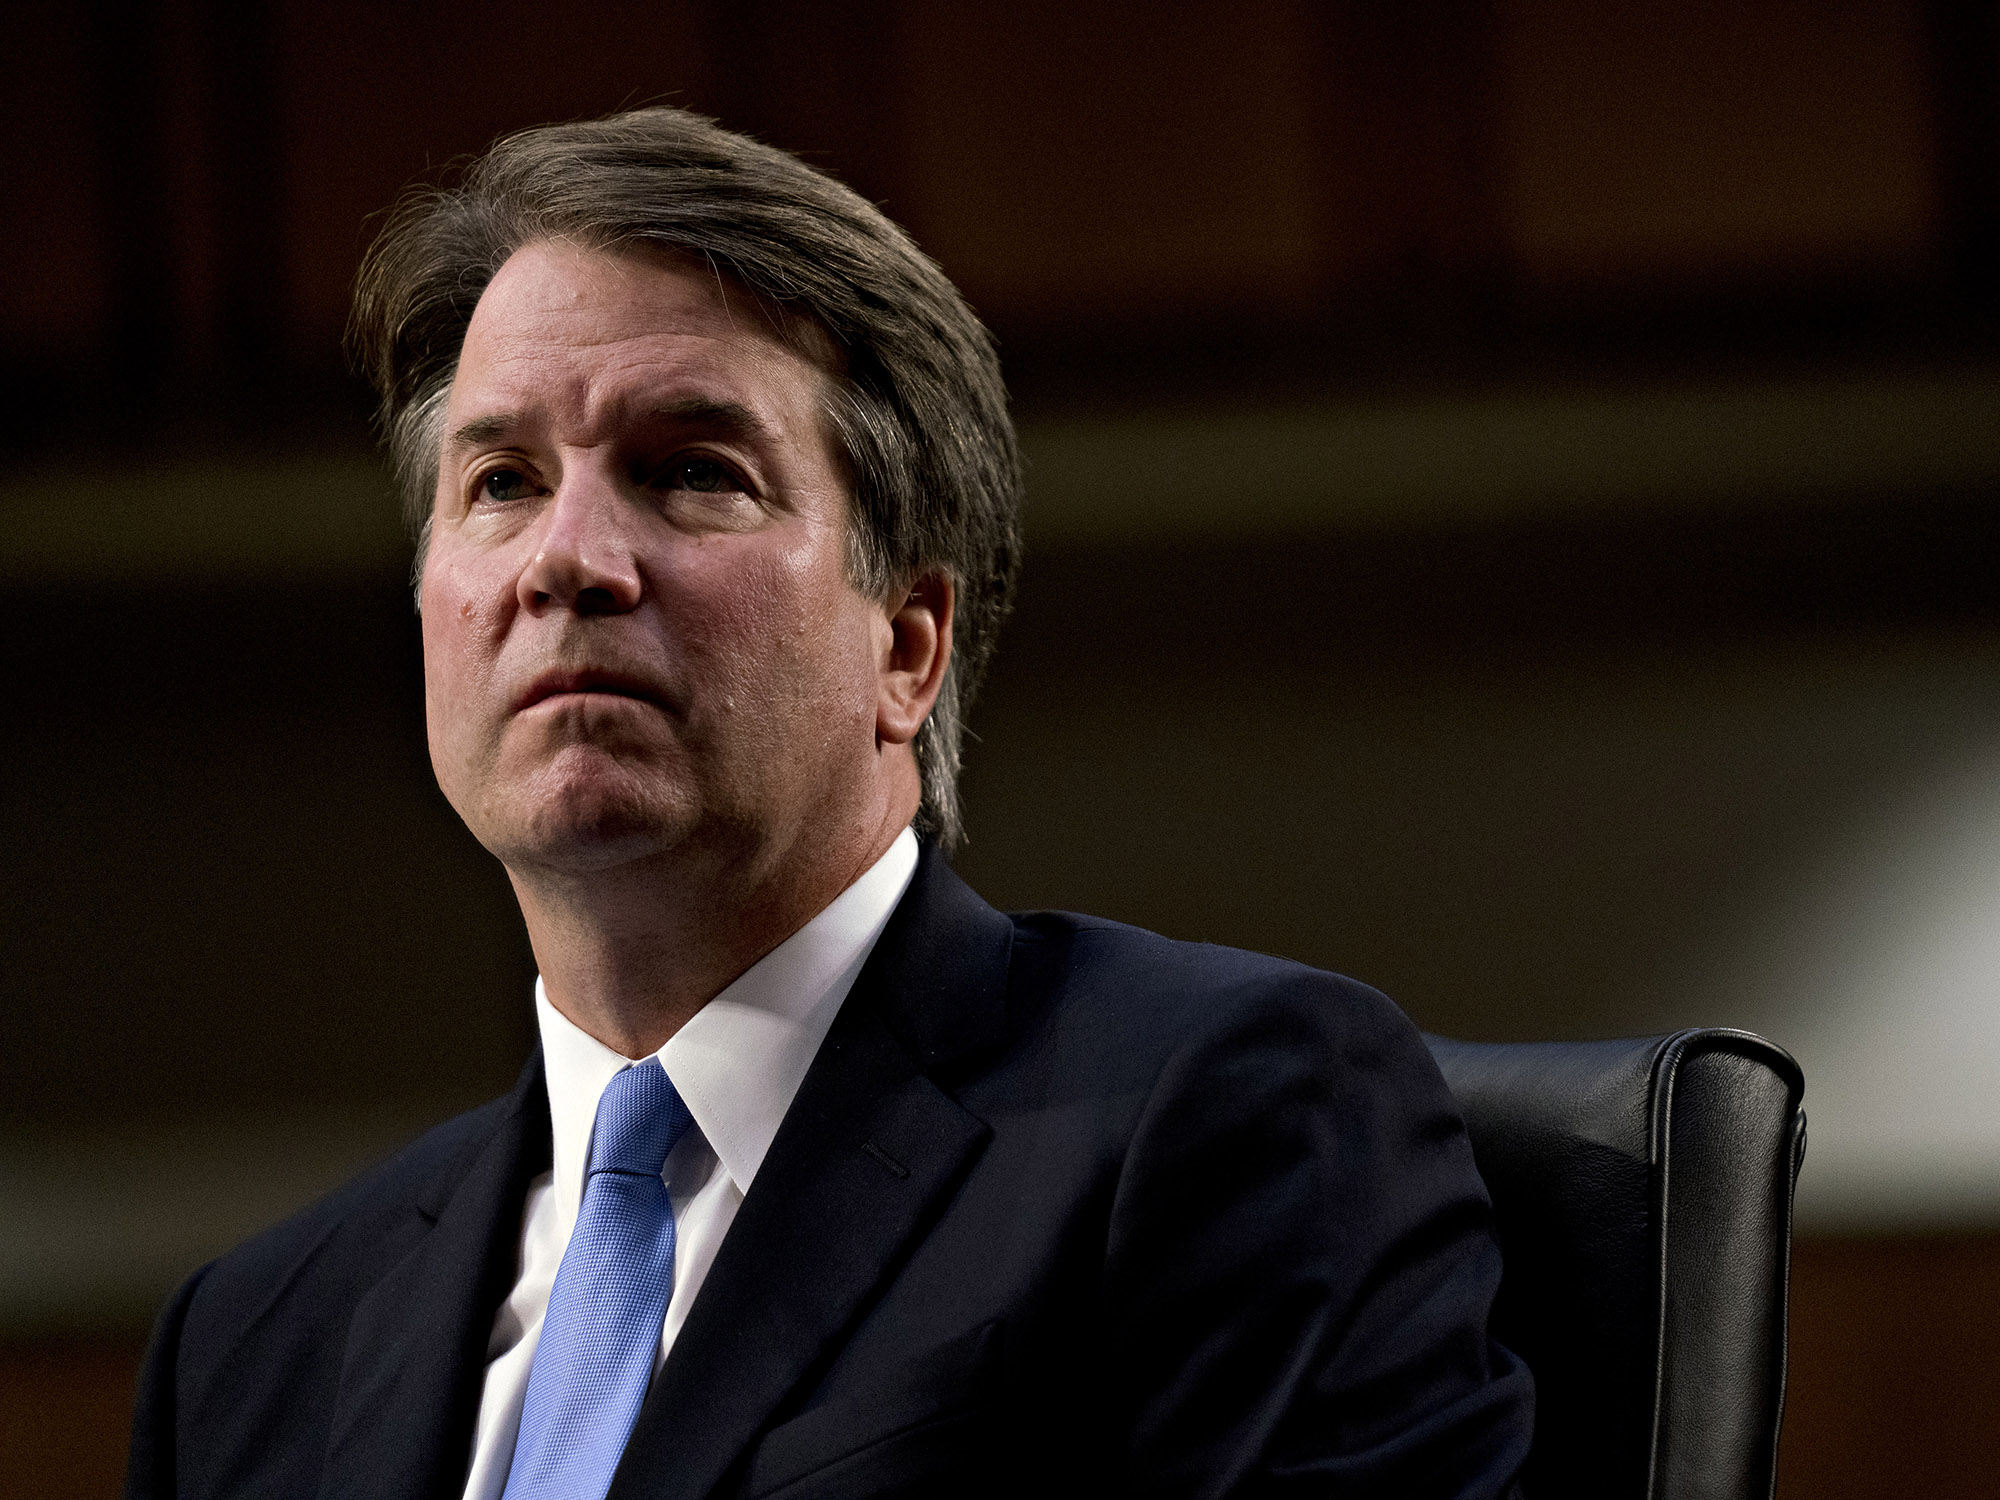 bloomberg.com - Chris Strohm - White House Hasn't Asked FBI to Vet Kavanaugh Allegations, Sources Say